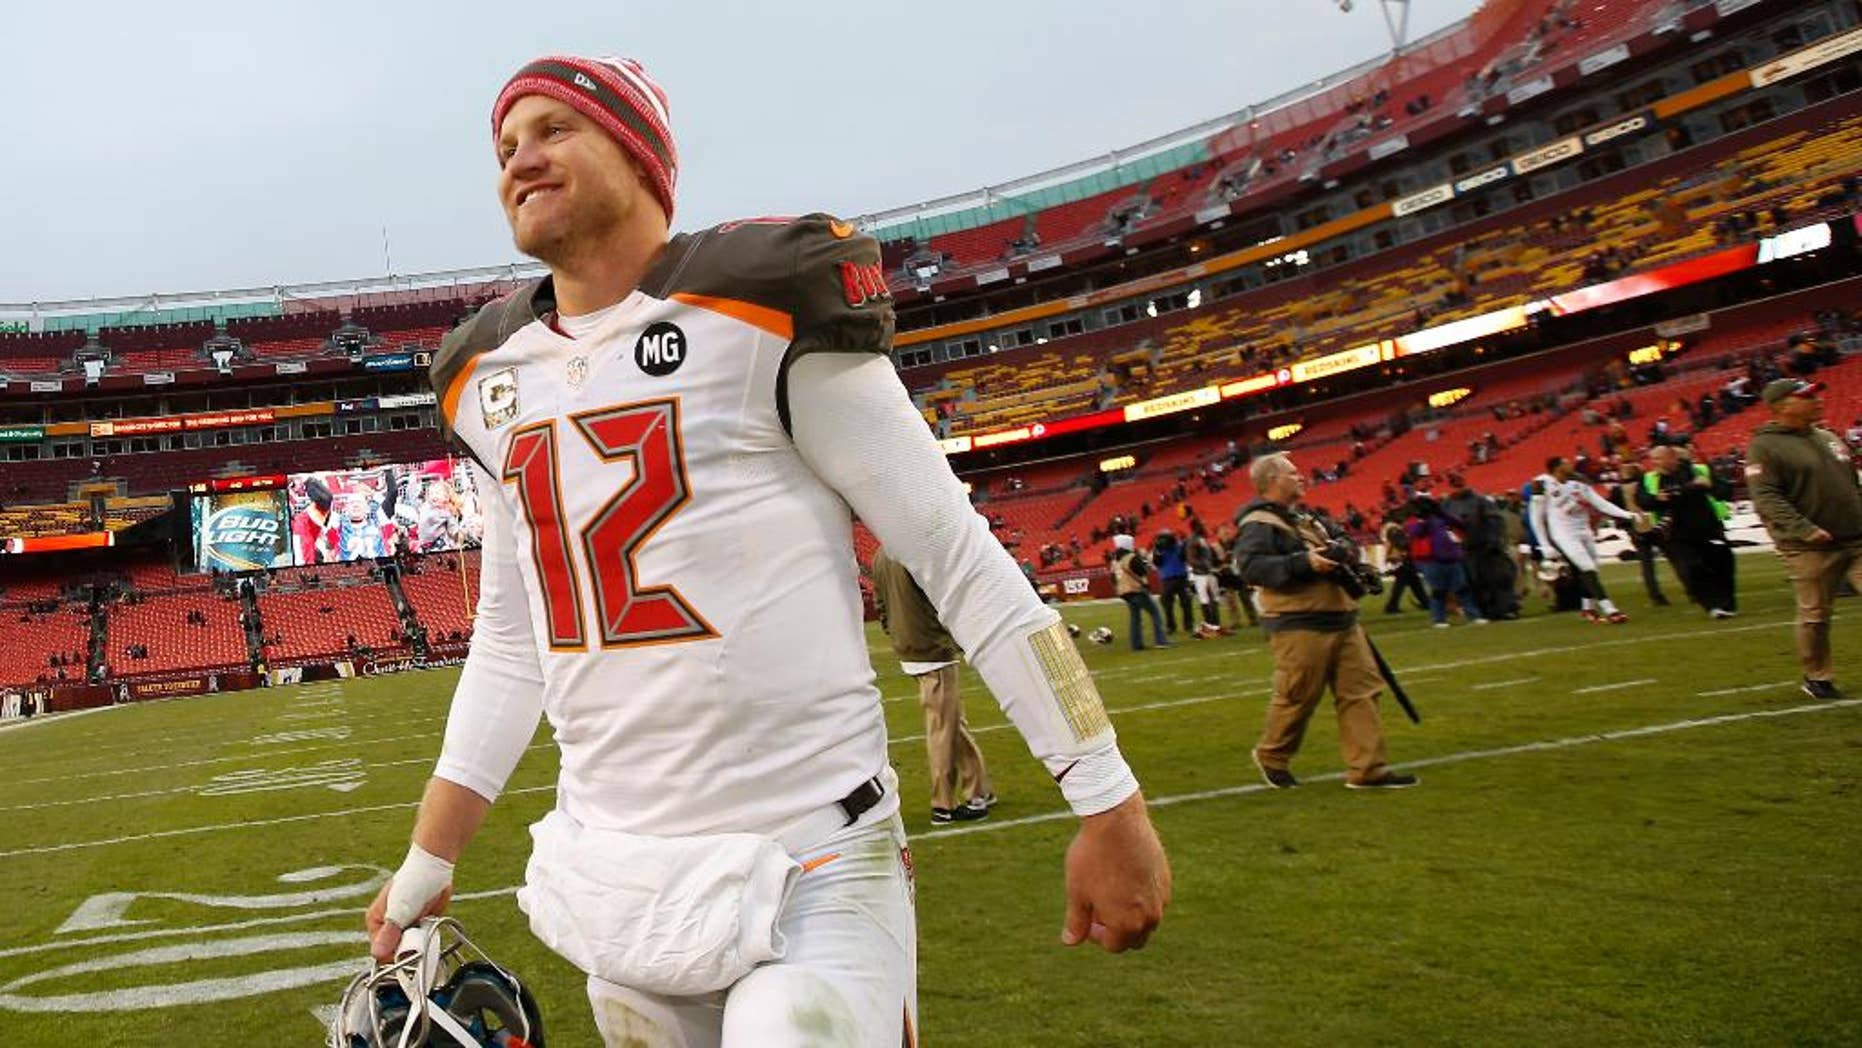 Tampa Bay Buccaneers quarterback Josh McCown (12) smiles as he walks off the field after a 27-7 victory over the Washington Redskins in an NFL football game in Landover, Md., Sunday, Nov. 16, 2014. (AP Photo/Alex Brandon)